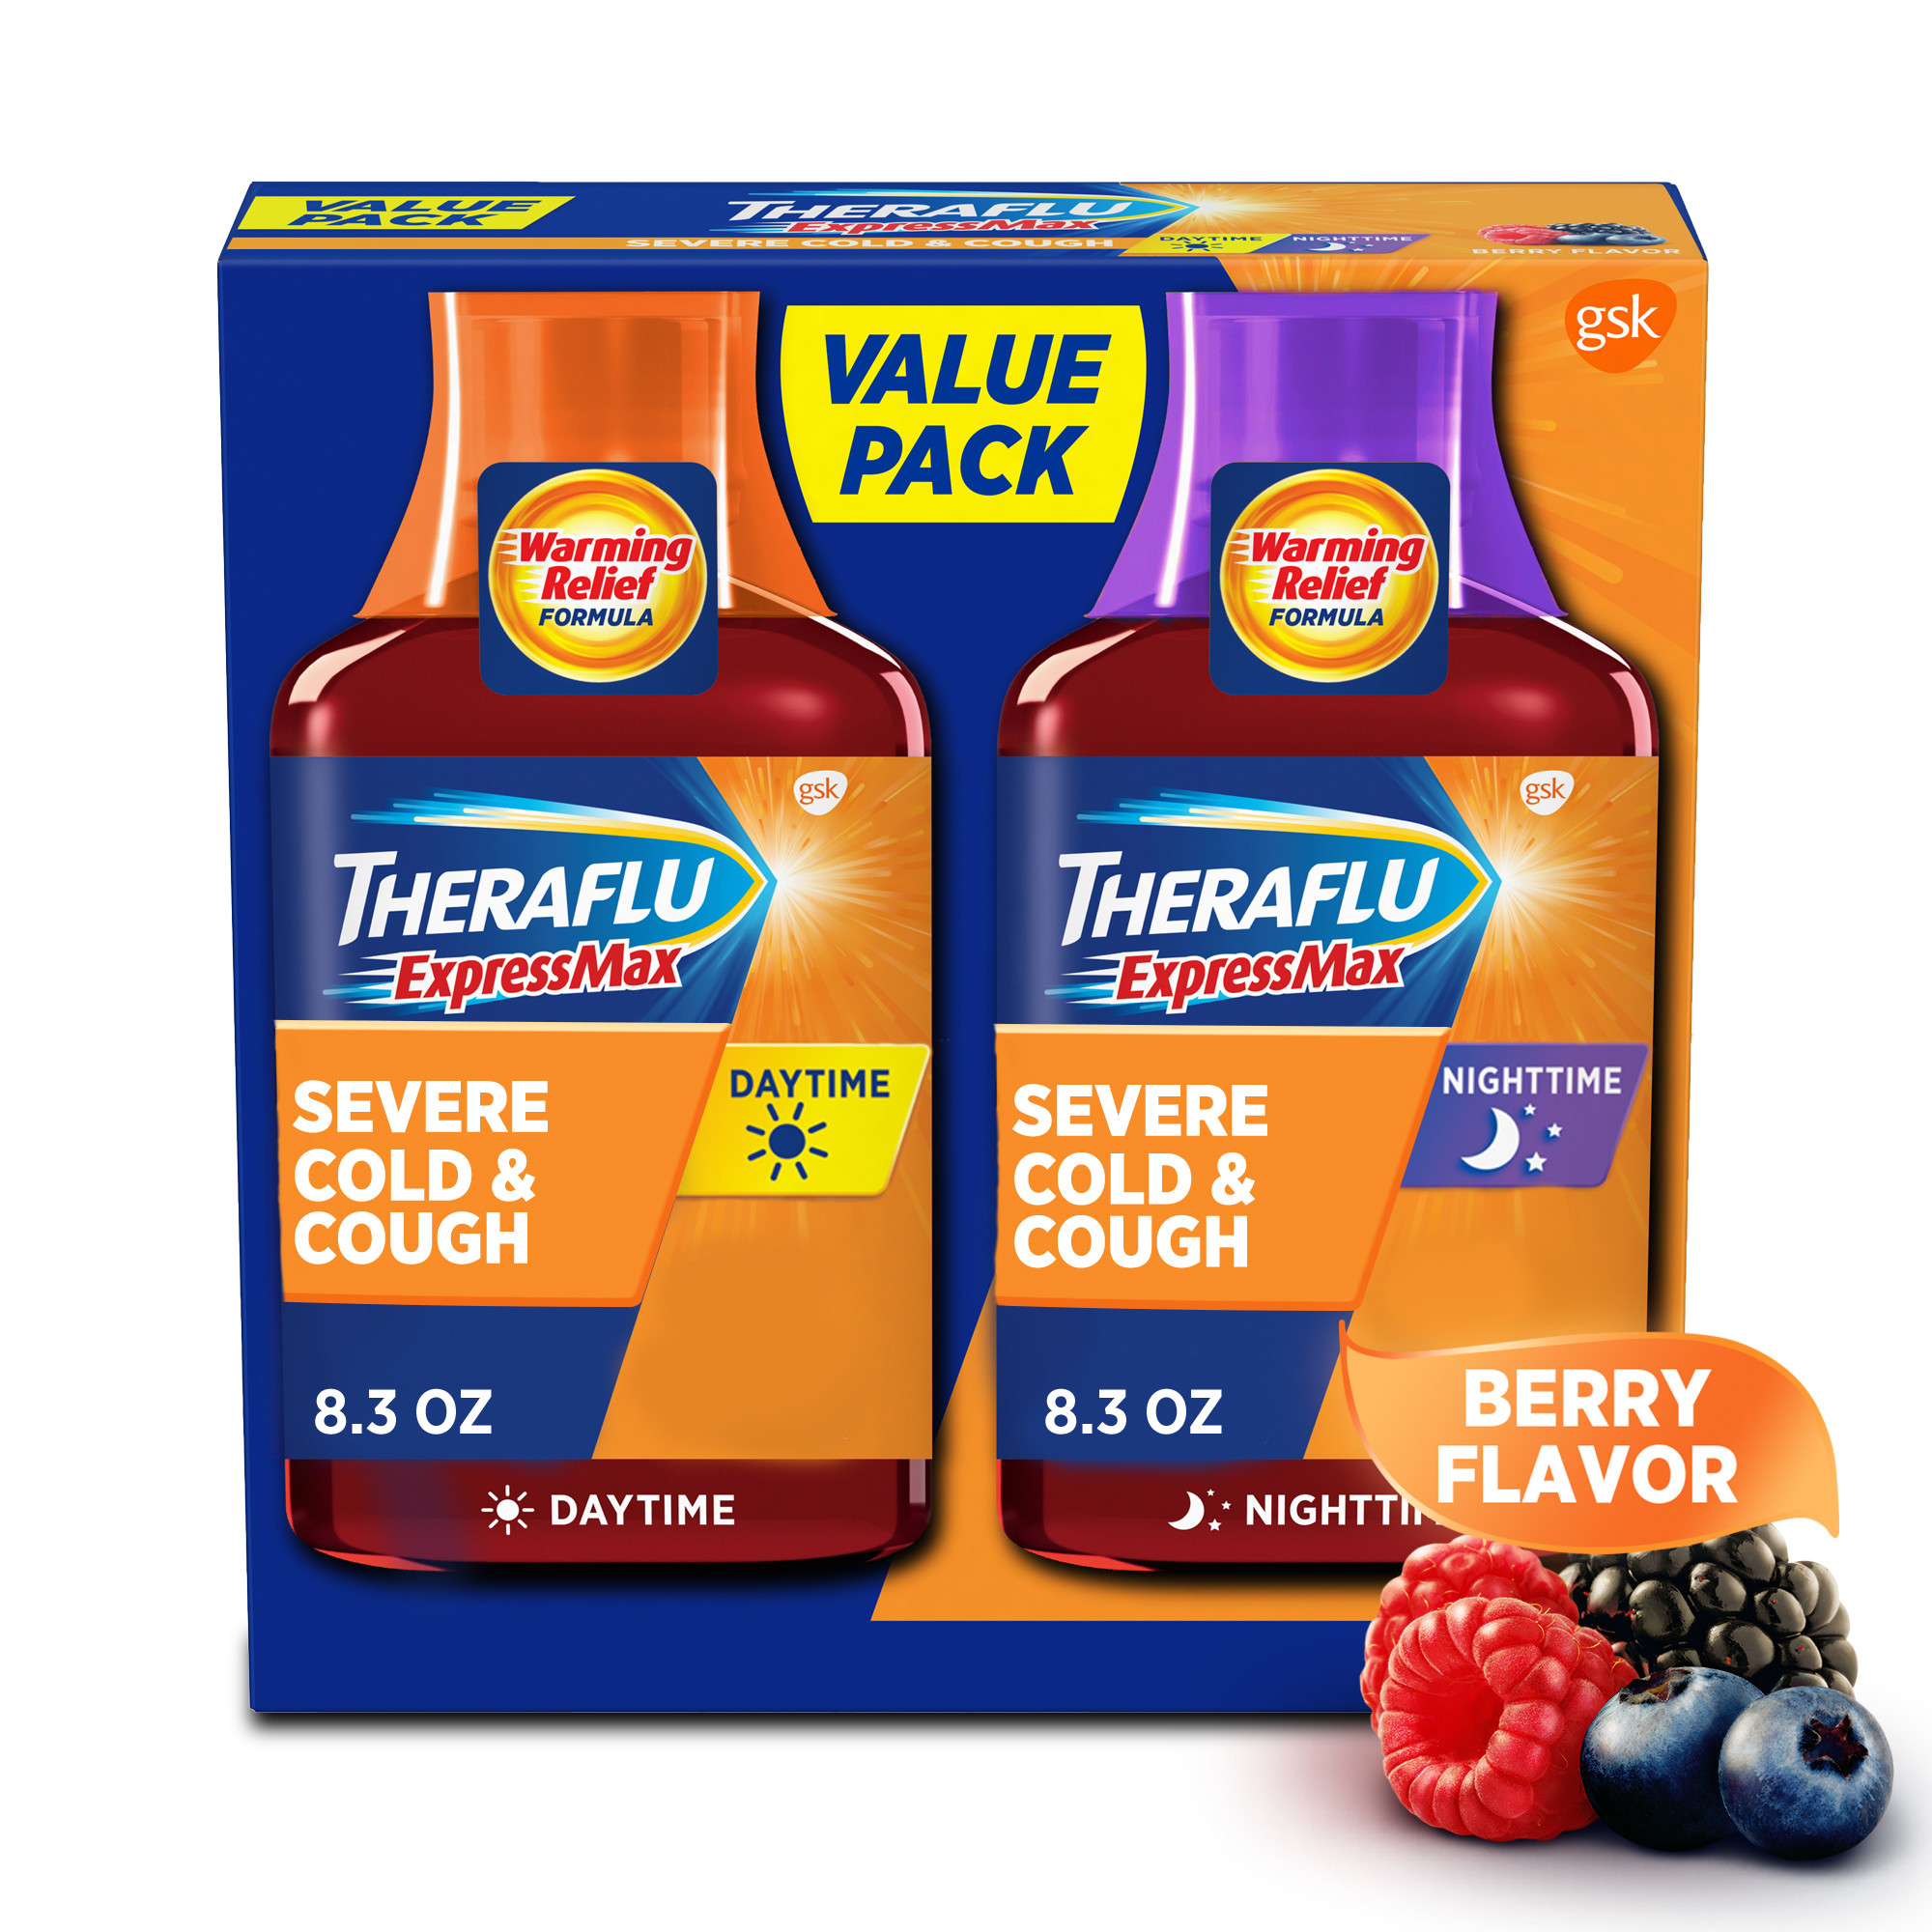 Theraflu Expressmax Day and Nighttime Severe Cold and Cough Syrup, 8.3 Oz., 2 Pack (Walmart)